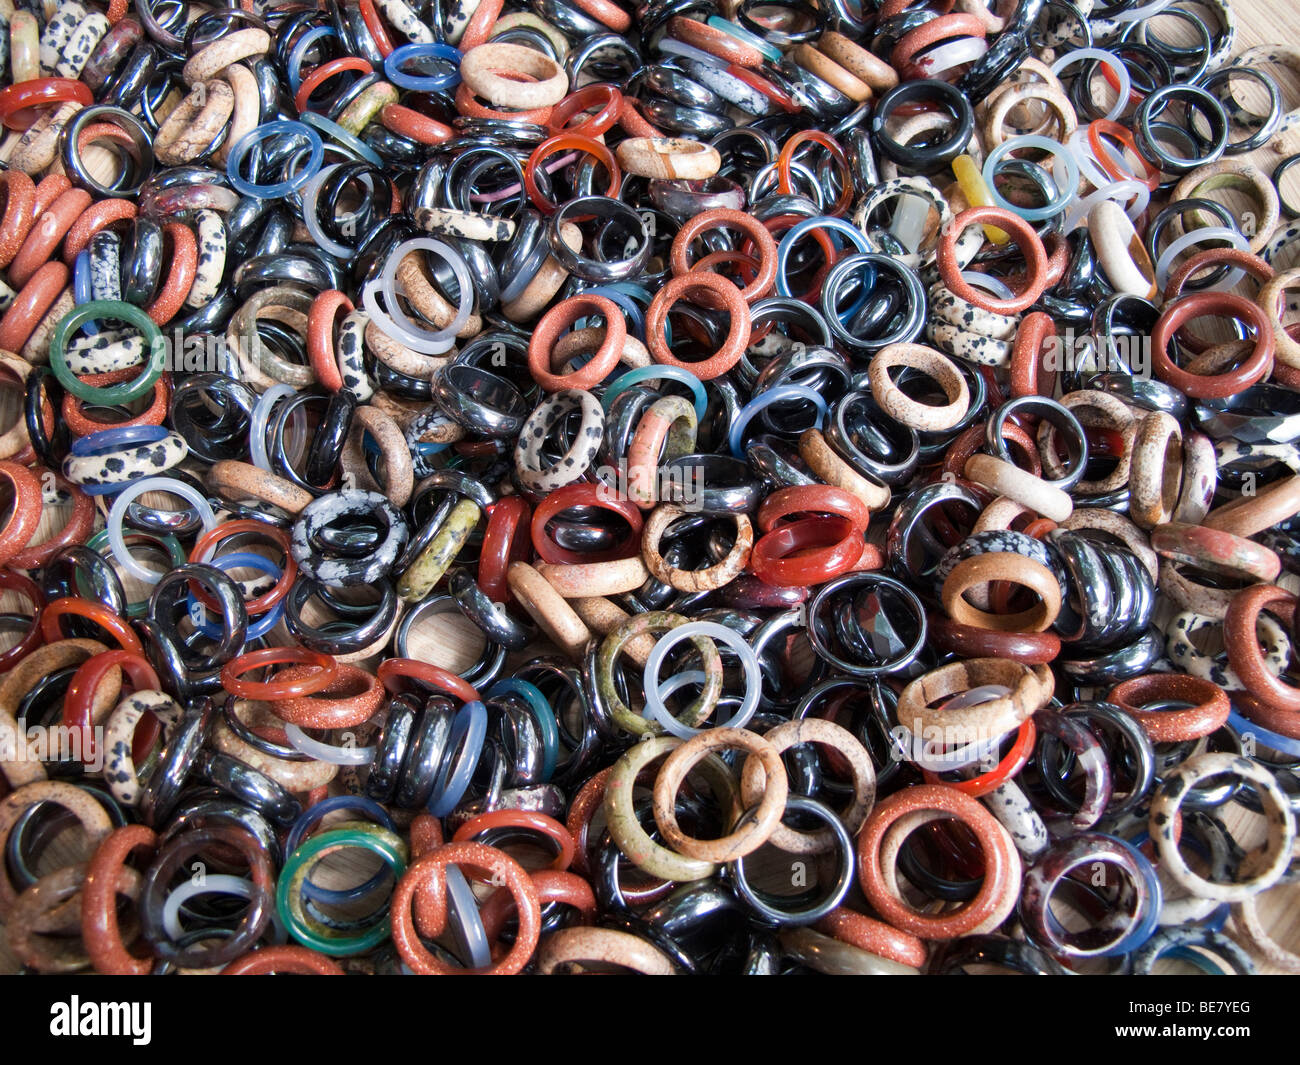 Plastic ring bands for sale on sunday market - Stock Image